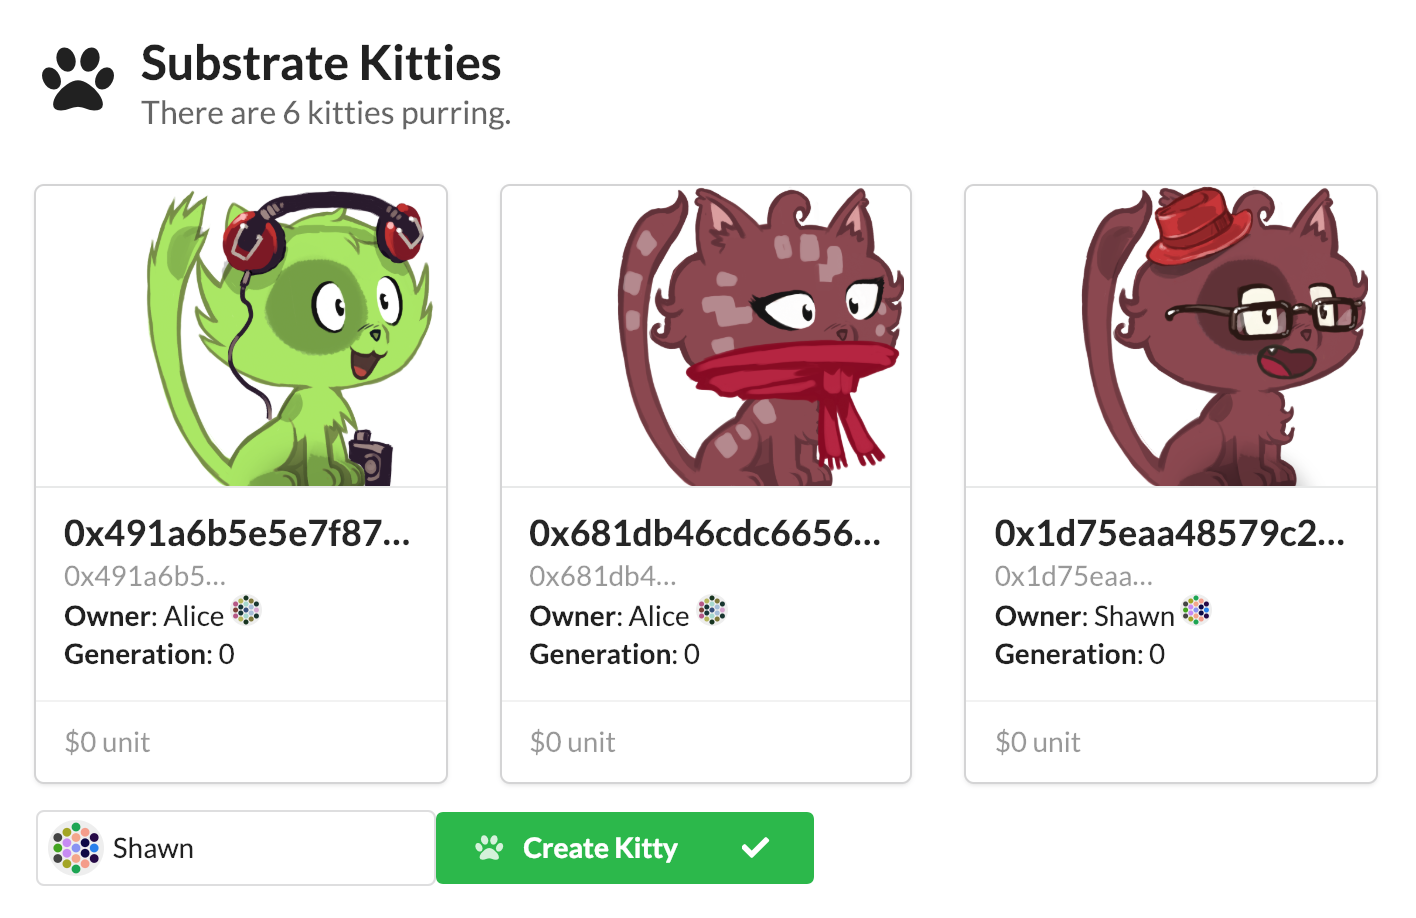 A screenshot of Substrate kitties